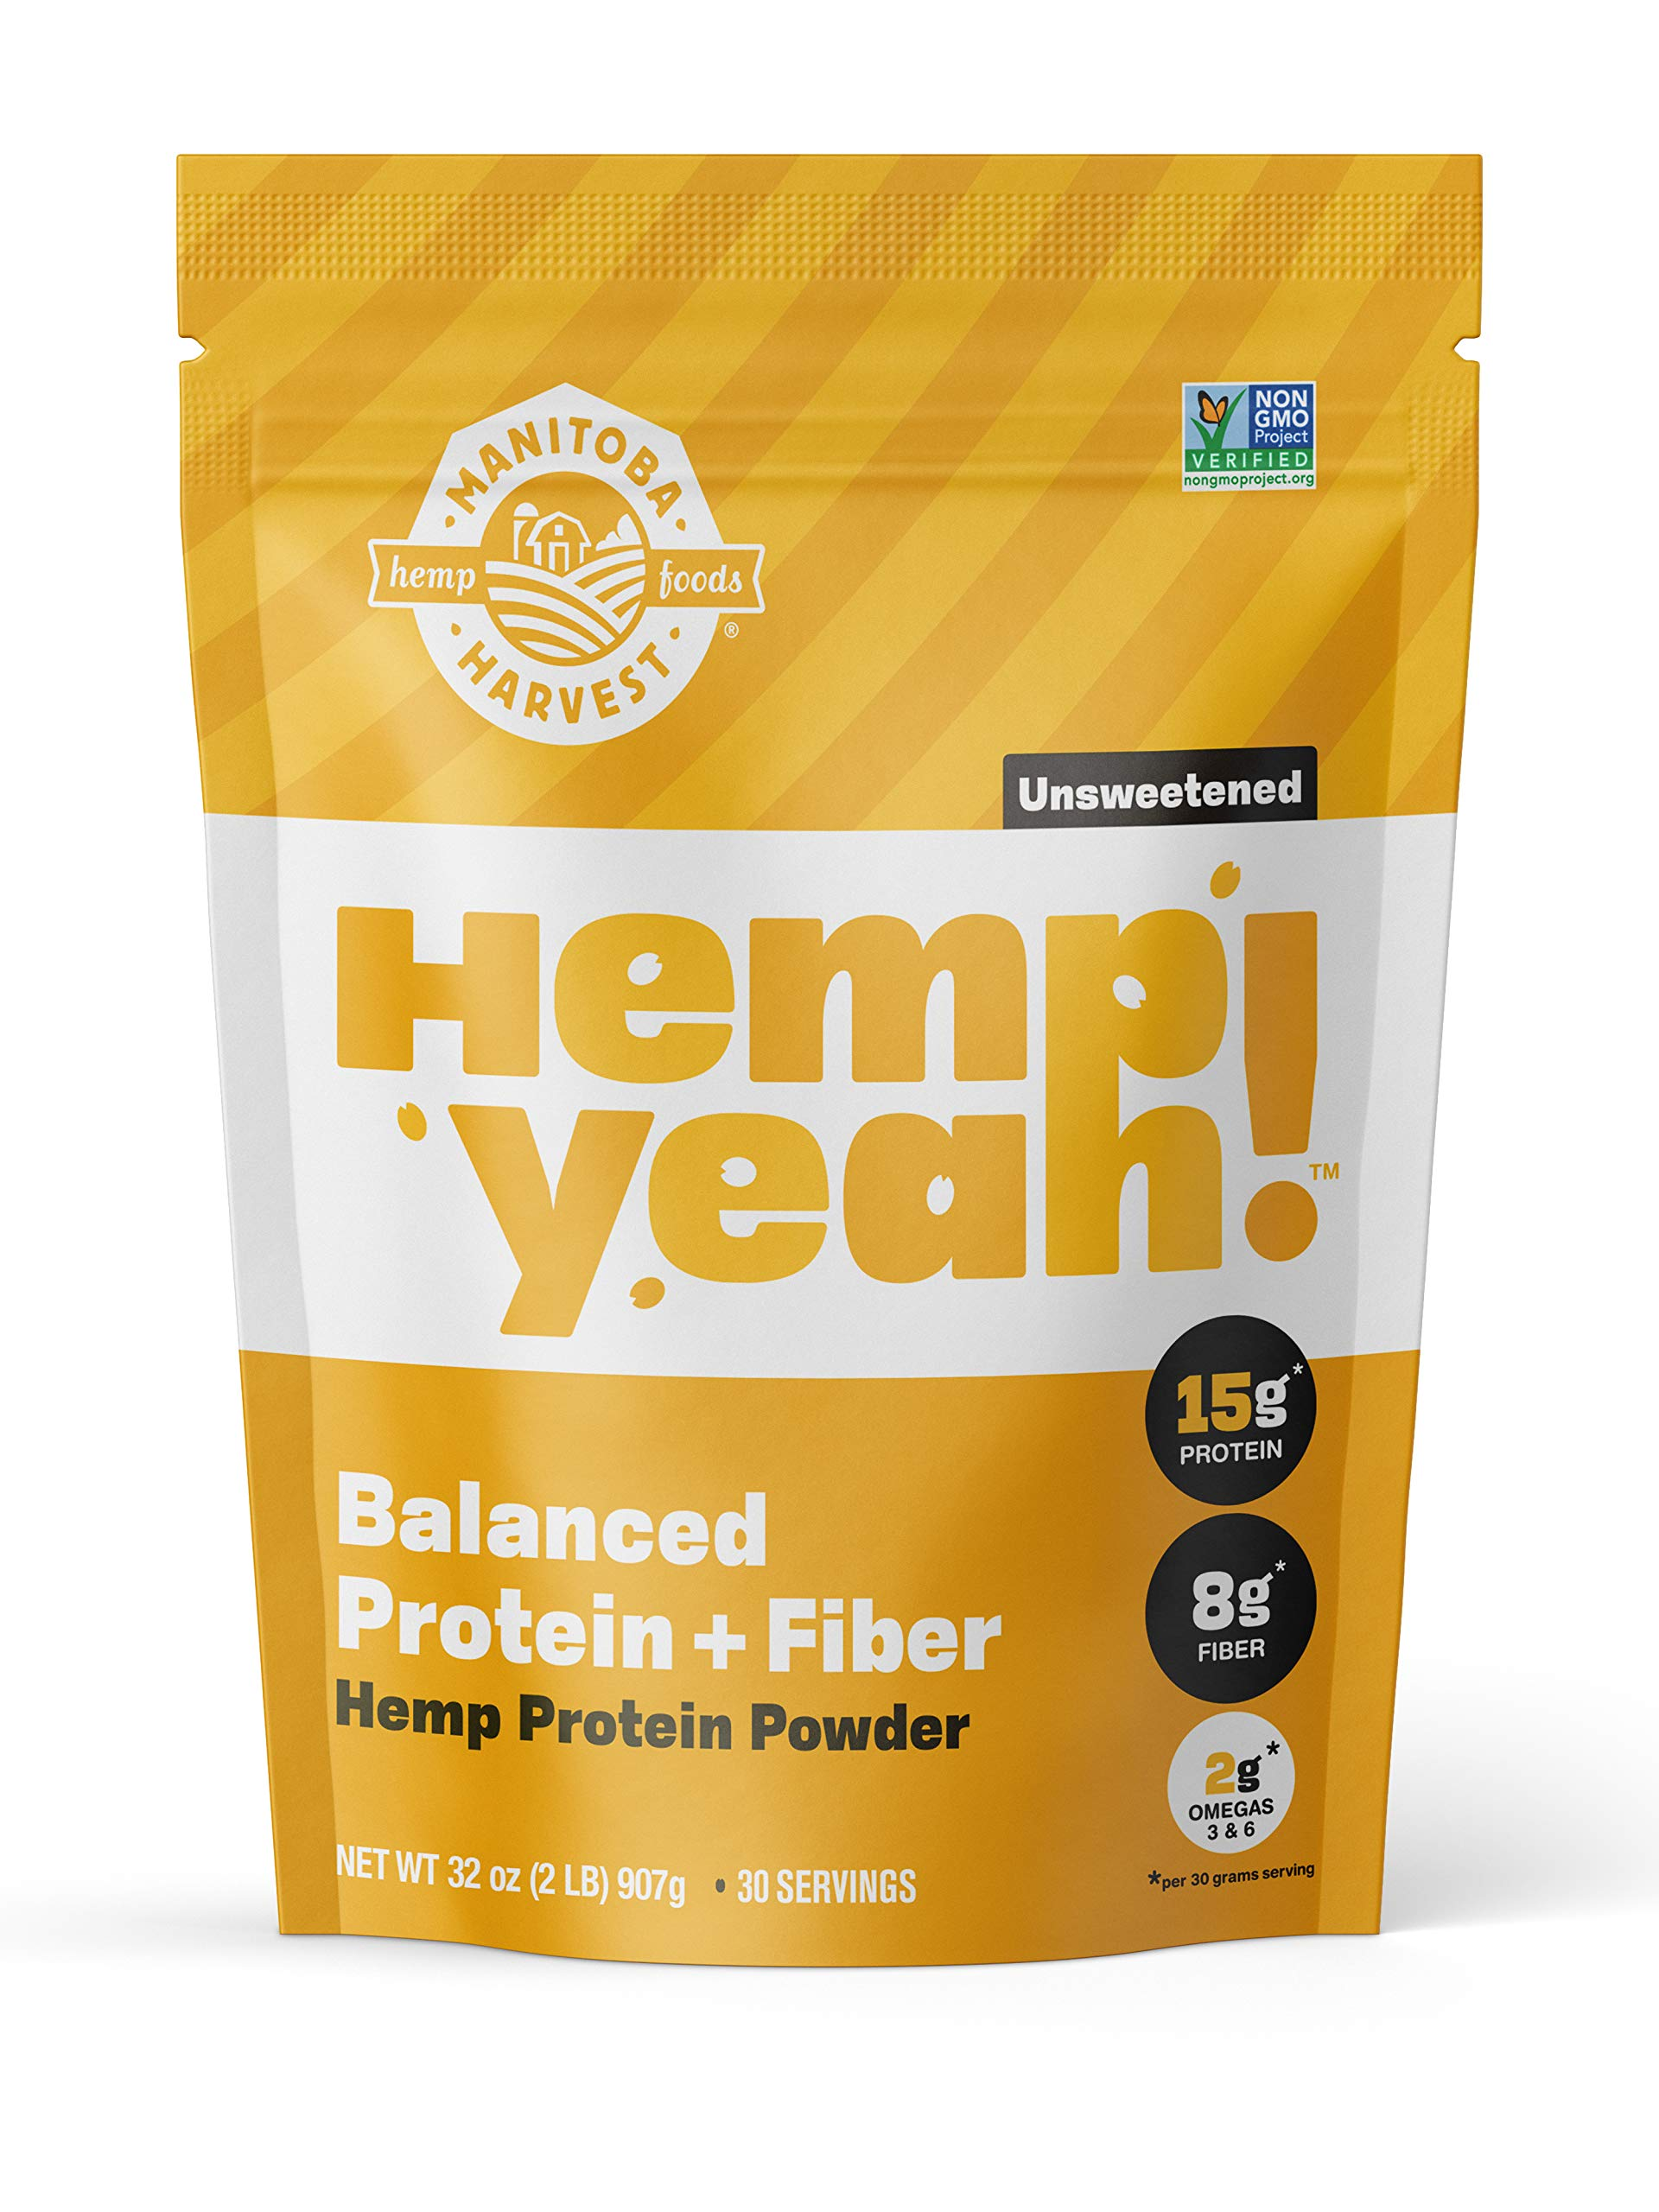 Manitoba Harvest Hemp Yeah! Balanced Protein + Fiber Powder, Unsweetened, 32oz, with 15g protein, 8g Fiber and 2g Omegas 3&6 per Serving, Keto-Friendly, Preservative Free, Non-GMO by Manitoba Harvest